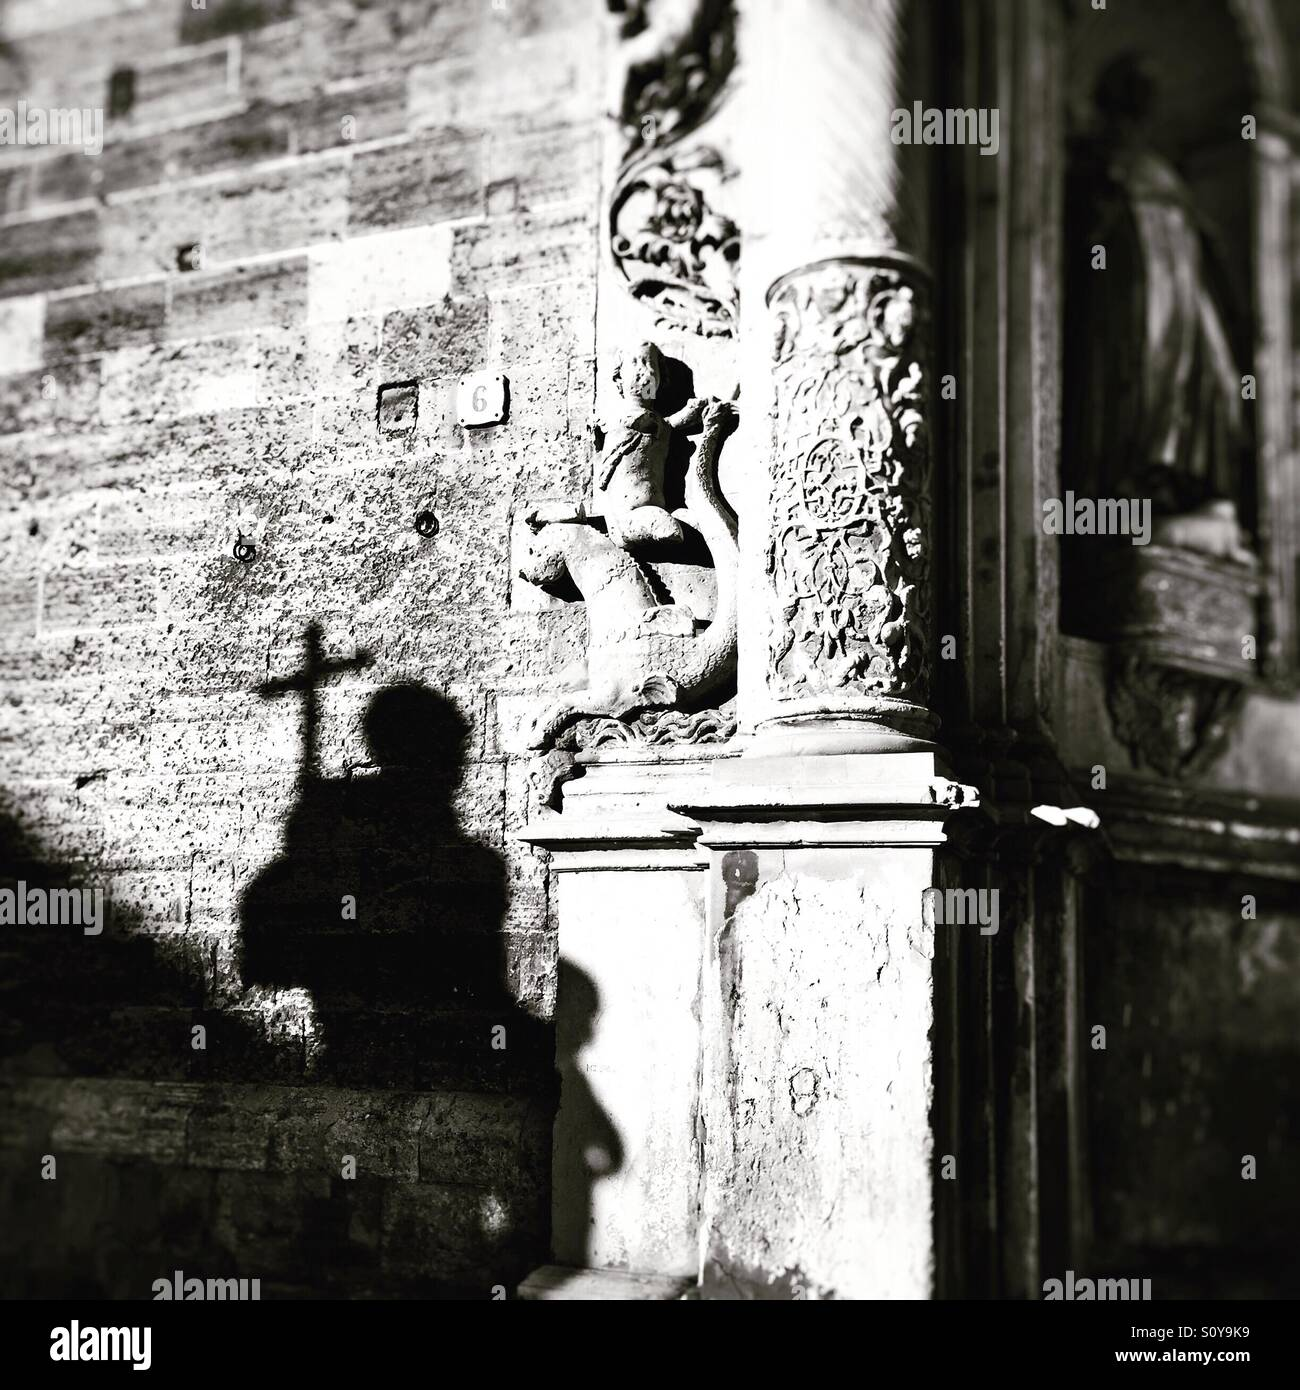 Shadow of St Francis statue in Palma, Majorca. Black and white Stock Photo